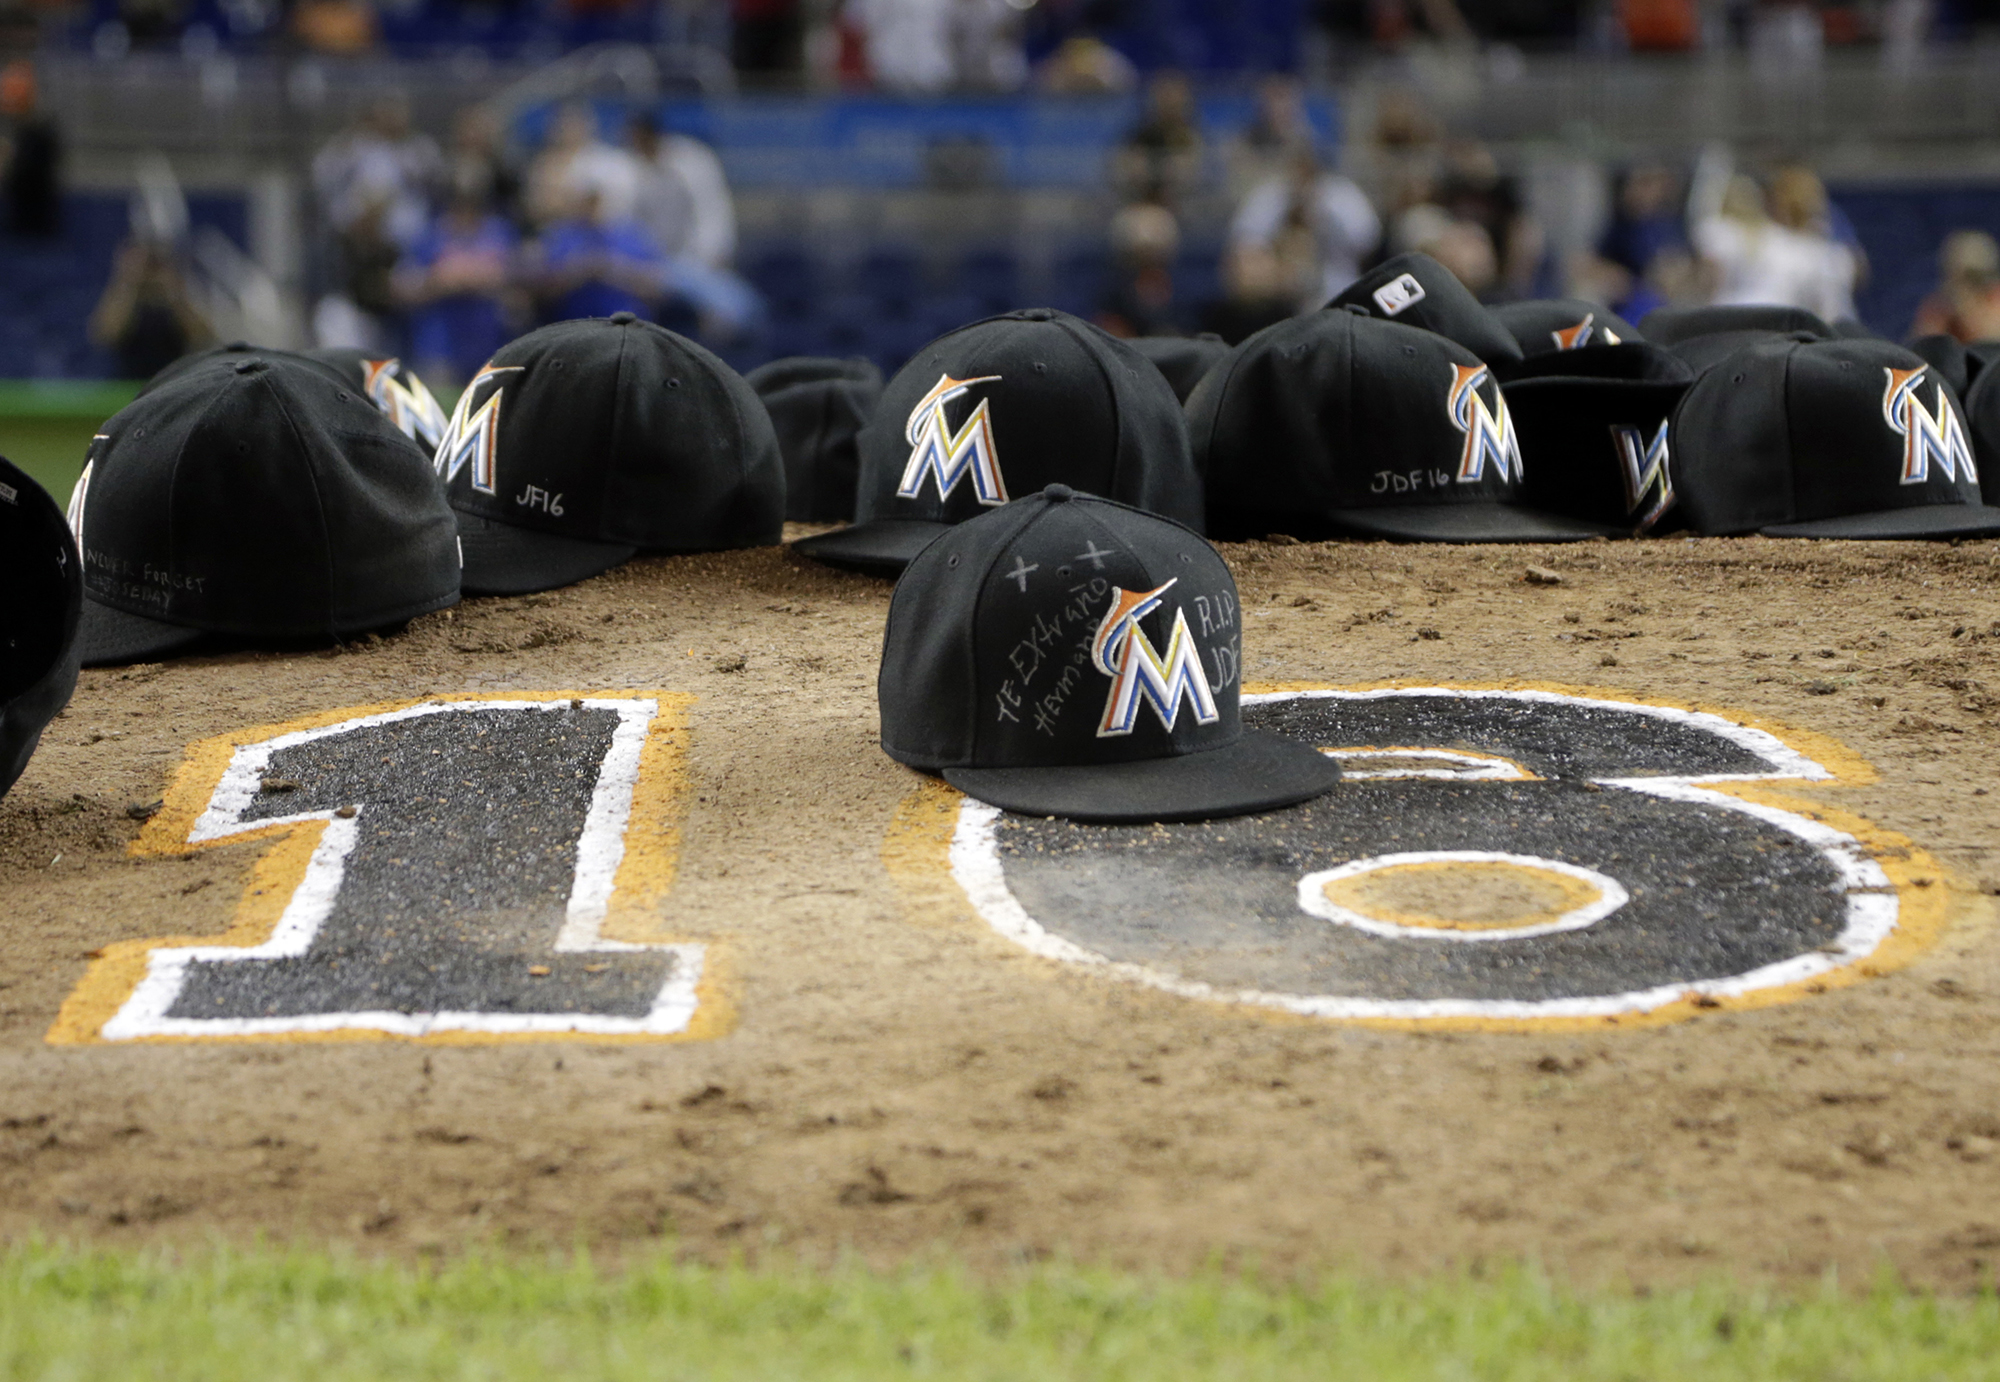 Miami Marlins ball caps left by the players sit on the pitching mound with the number 16 in honor of pitcher Jose Fernandez after a baseball game against the New York Mets, Monday, Sept. 26, 2016, in Miami. The Marlins defeated the Mets 7-3. (AP Photo/Lynne Sladky)